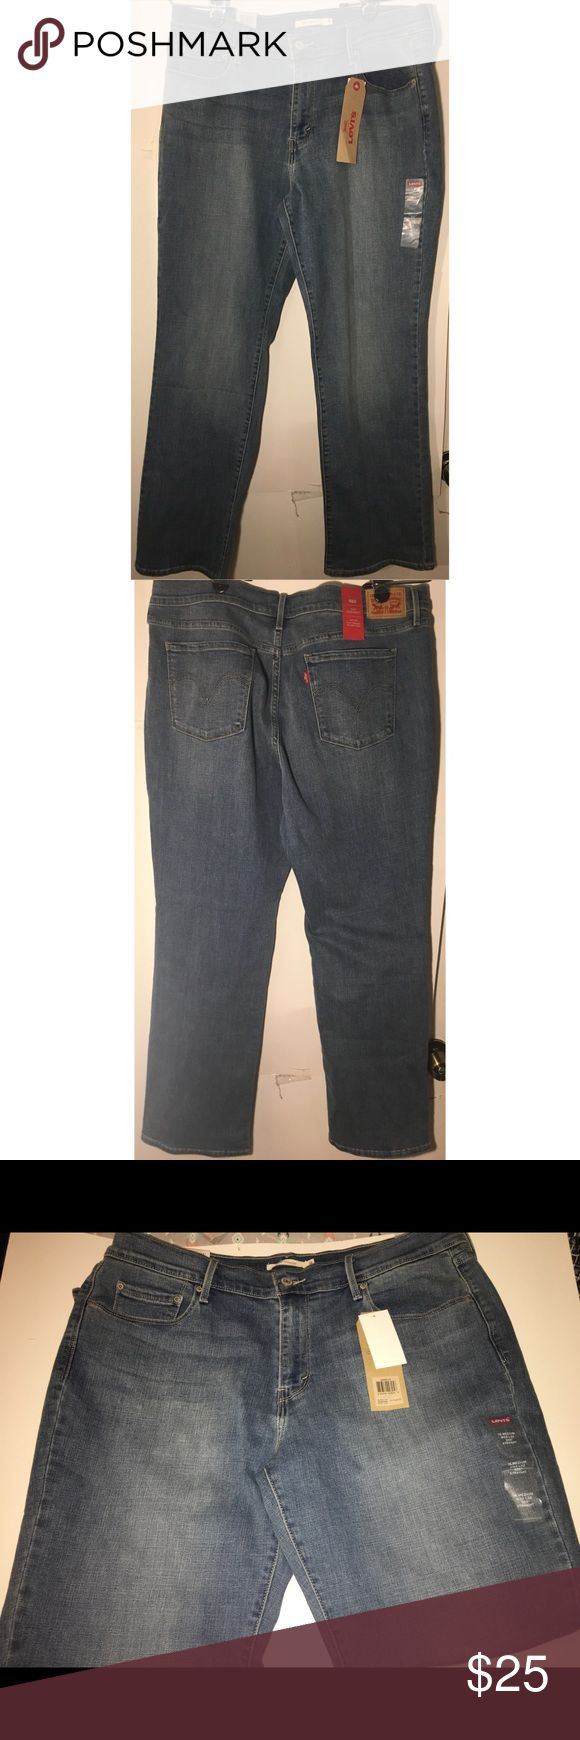 Levis 505  Straight Leg Jeans NWT (16) Brand new with tags jeans. Waist 33 Length 32. Mid rise, easy through the hips and thighs. Smoke free 🚭 Pet Friendly home 🐱🐱🐶 Levi's Jeans Straight Leg